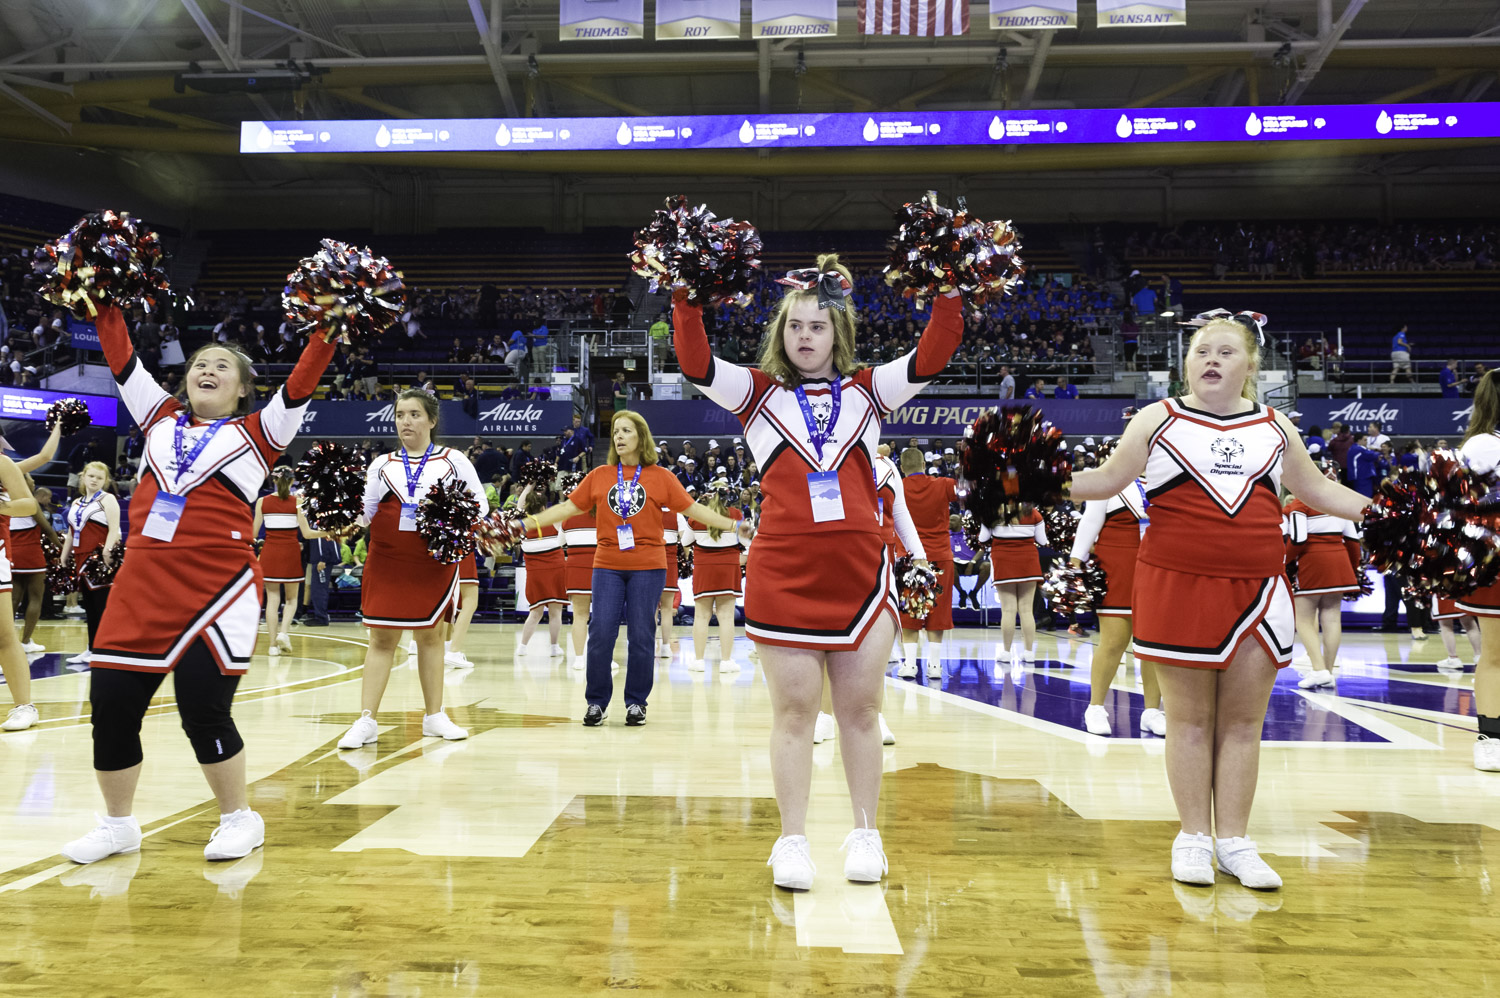 Cheerleaders performing for all Special Olympics athletes at the Marv Harshman Court of the University of Washington on July 1, 2018.